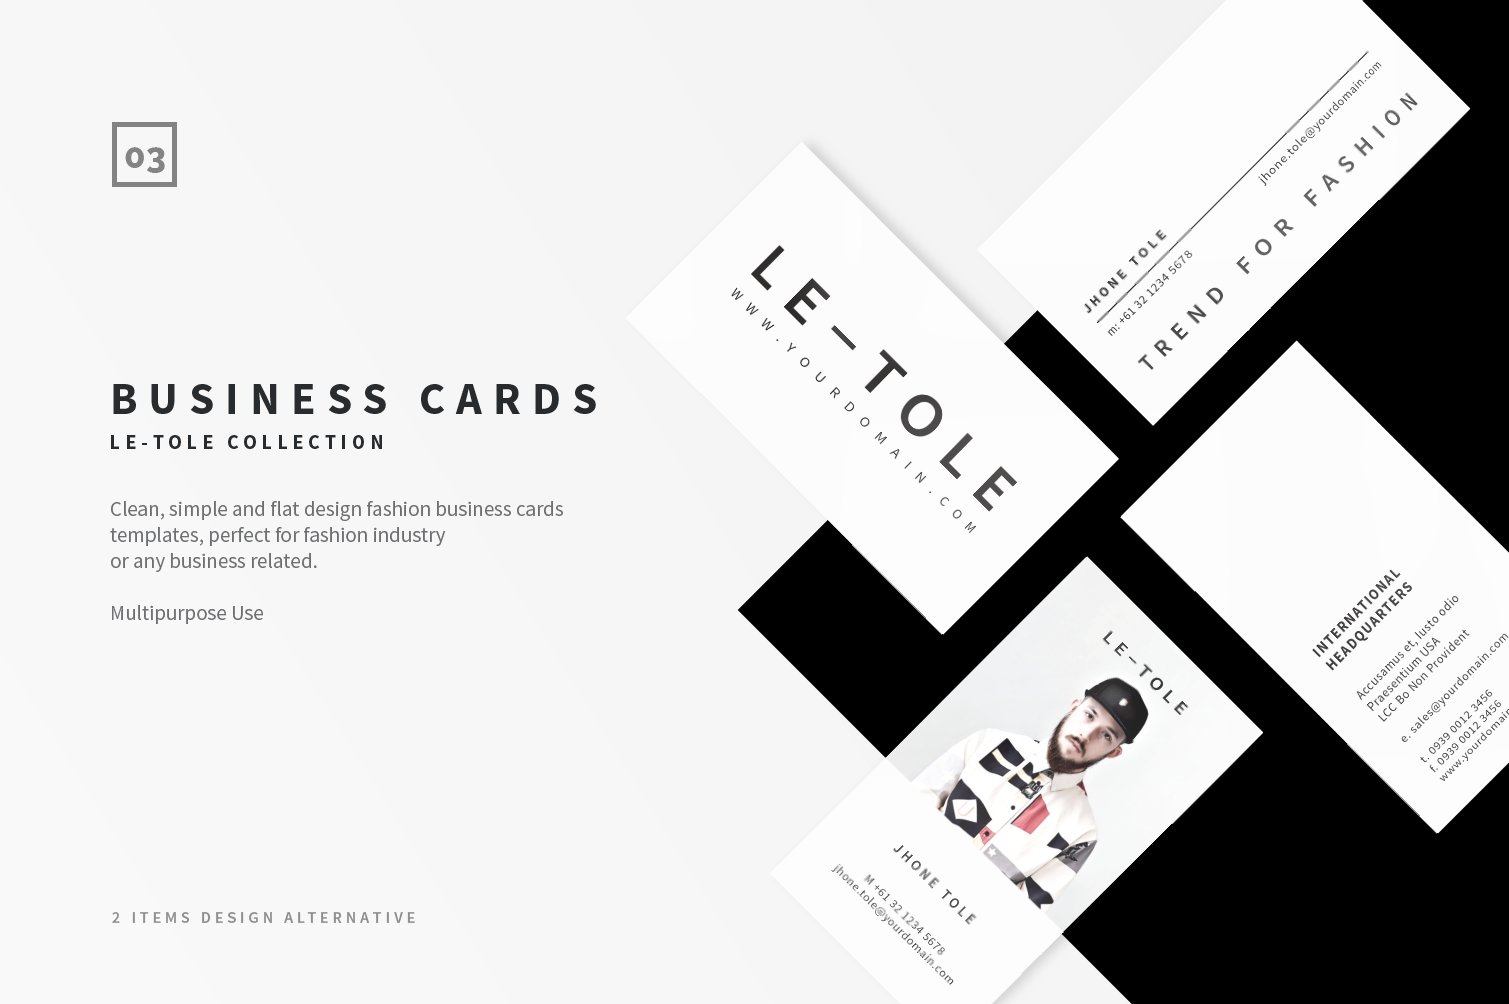 Fashion Business Cards ~ Business Card Templates ~ Creative Market